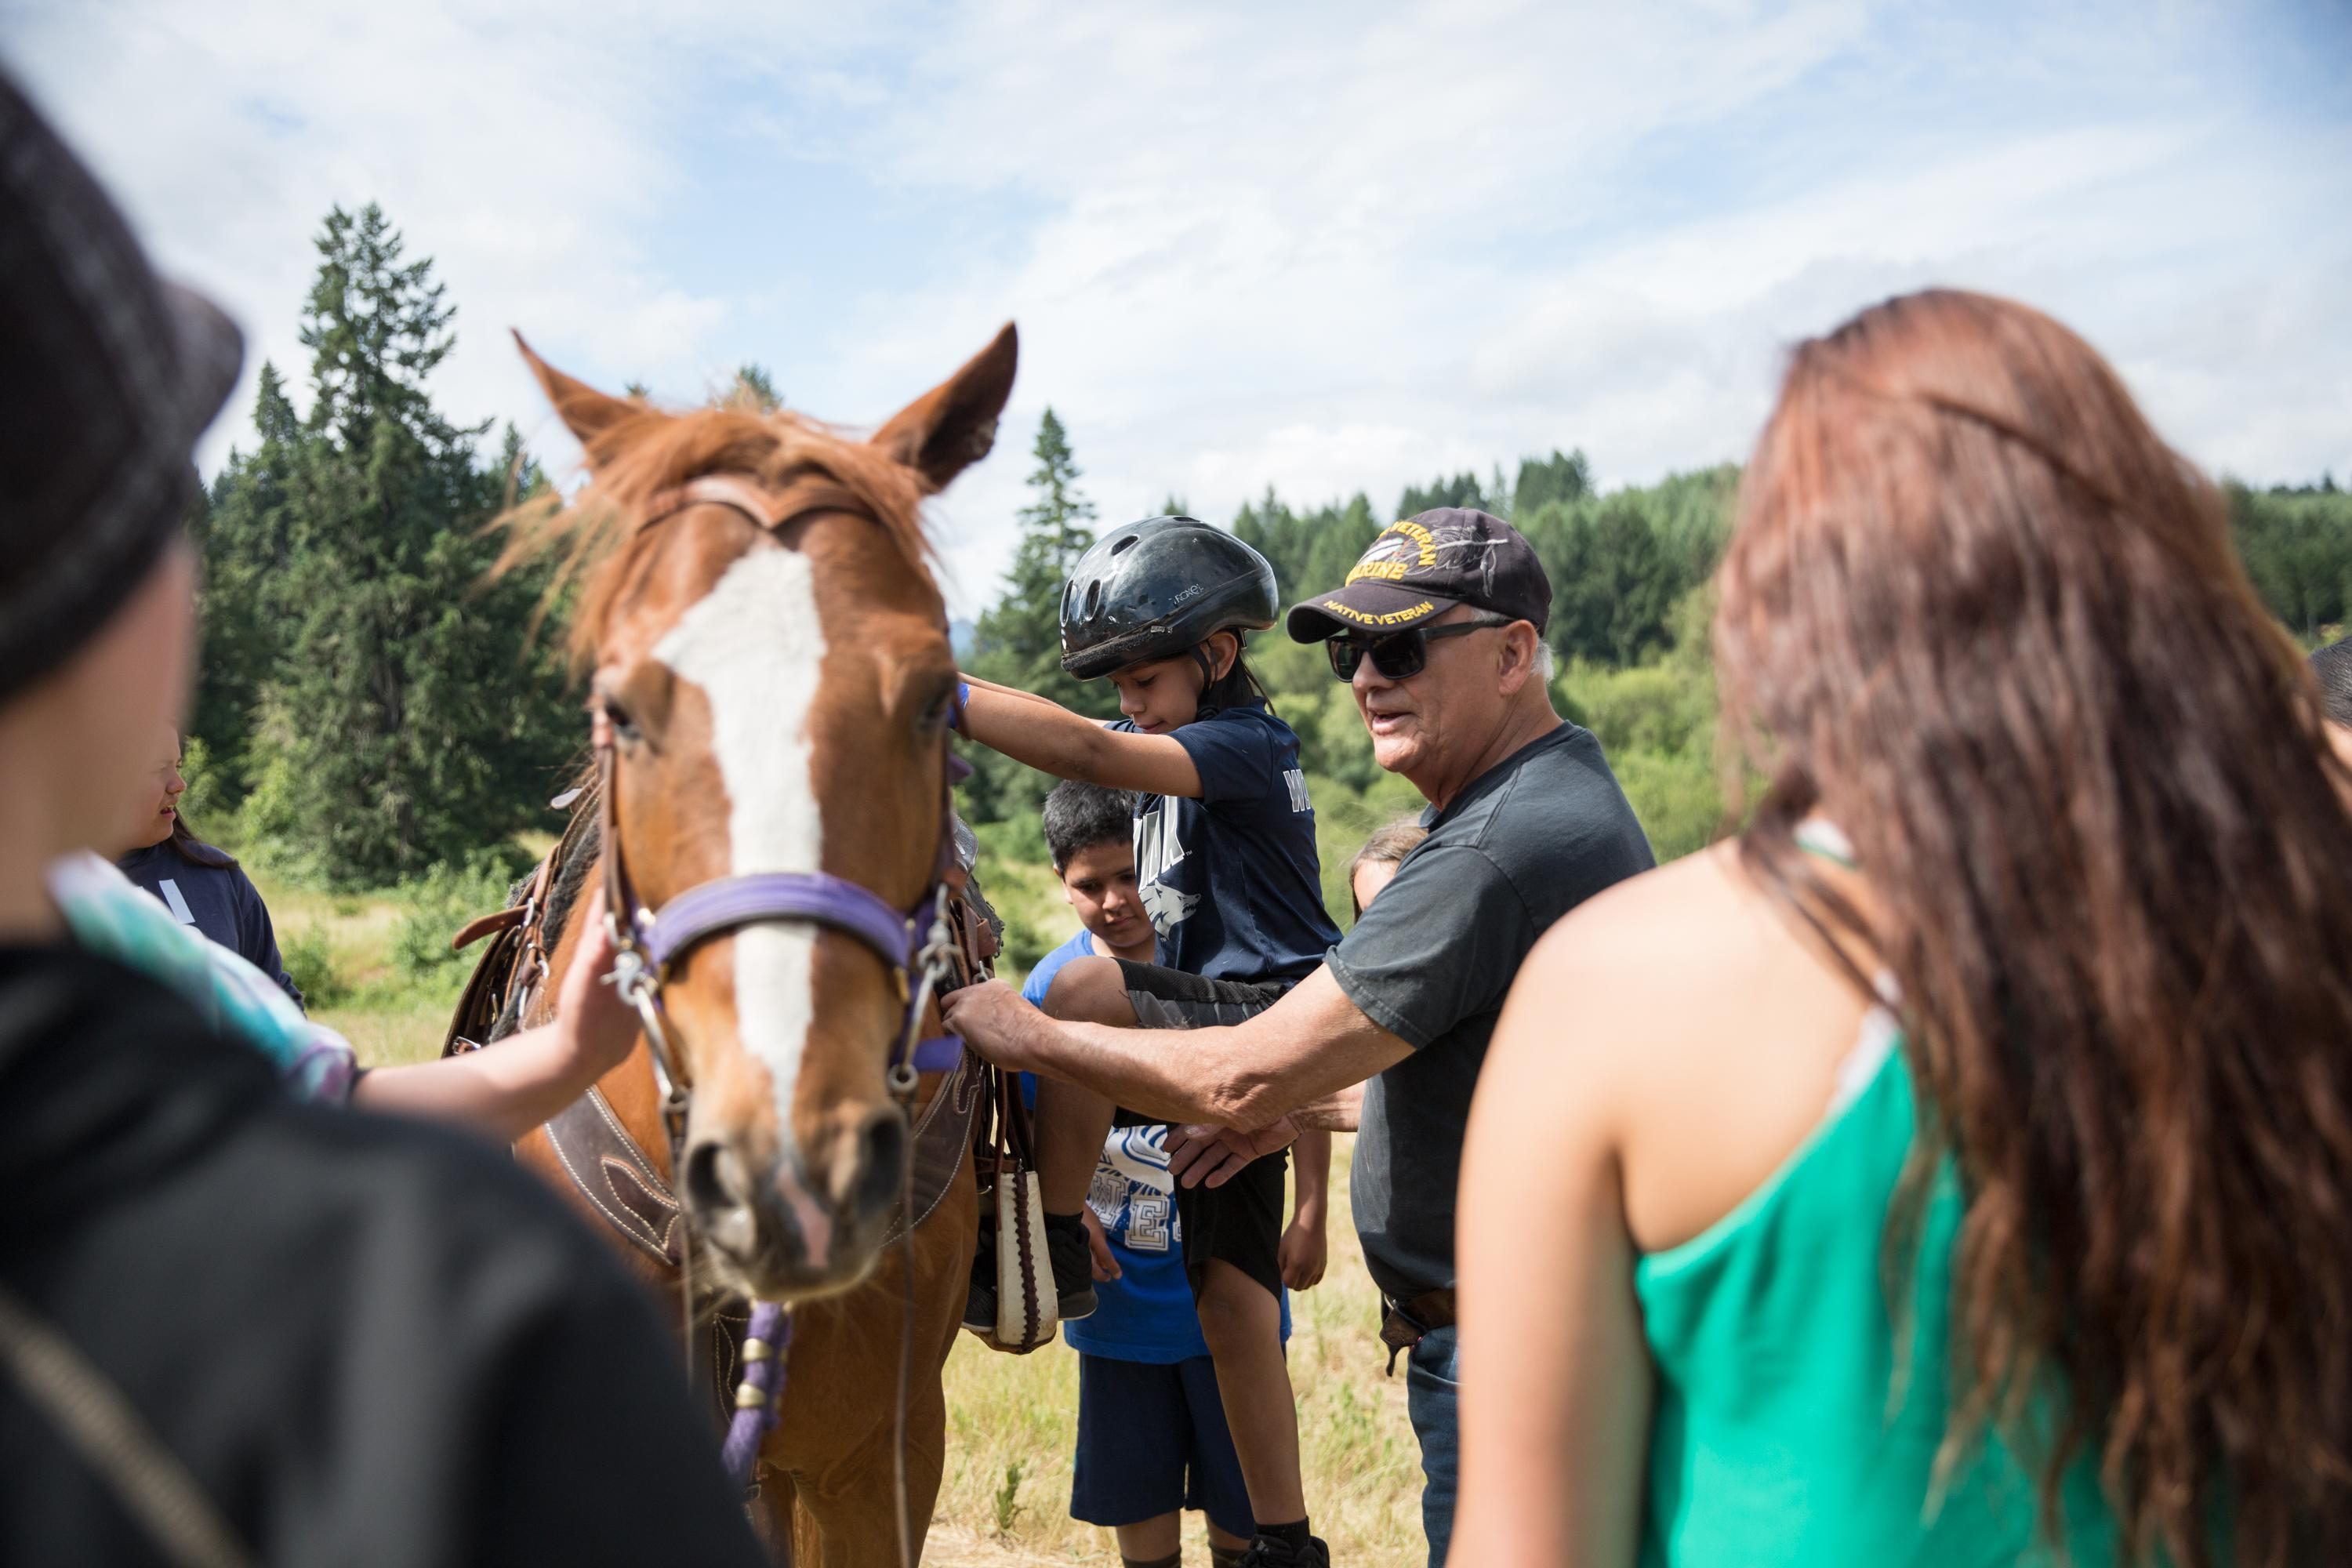 John Spence helps a boy onto his horse, Koda, during the connection to horses session at Wellness Warrior Camp in Grand Ronde, Ore., on Wednesday, June 24, 2019.